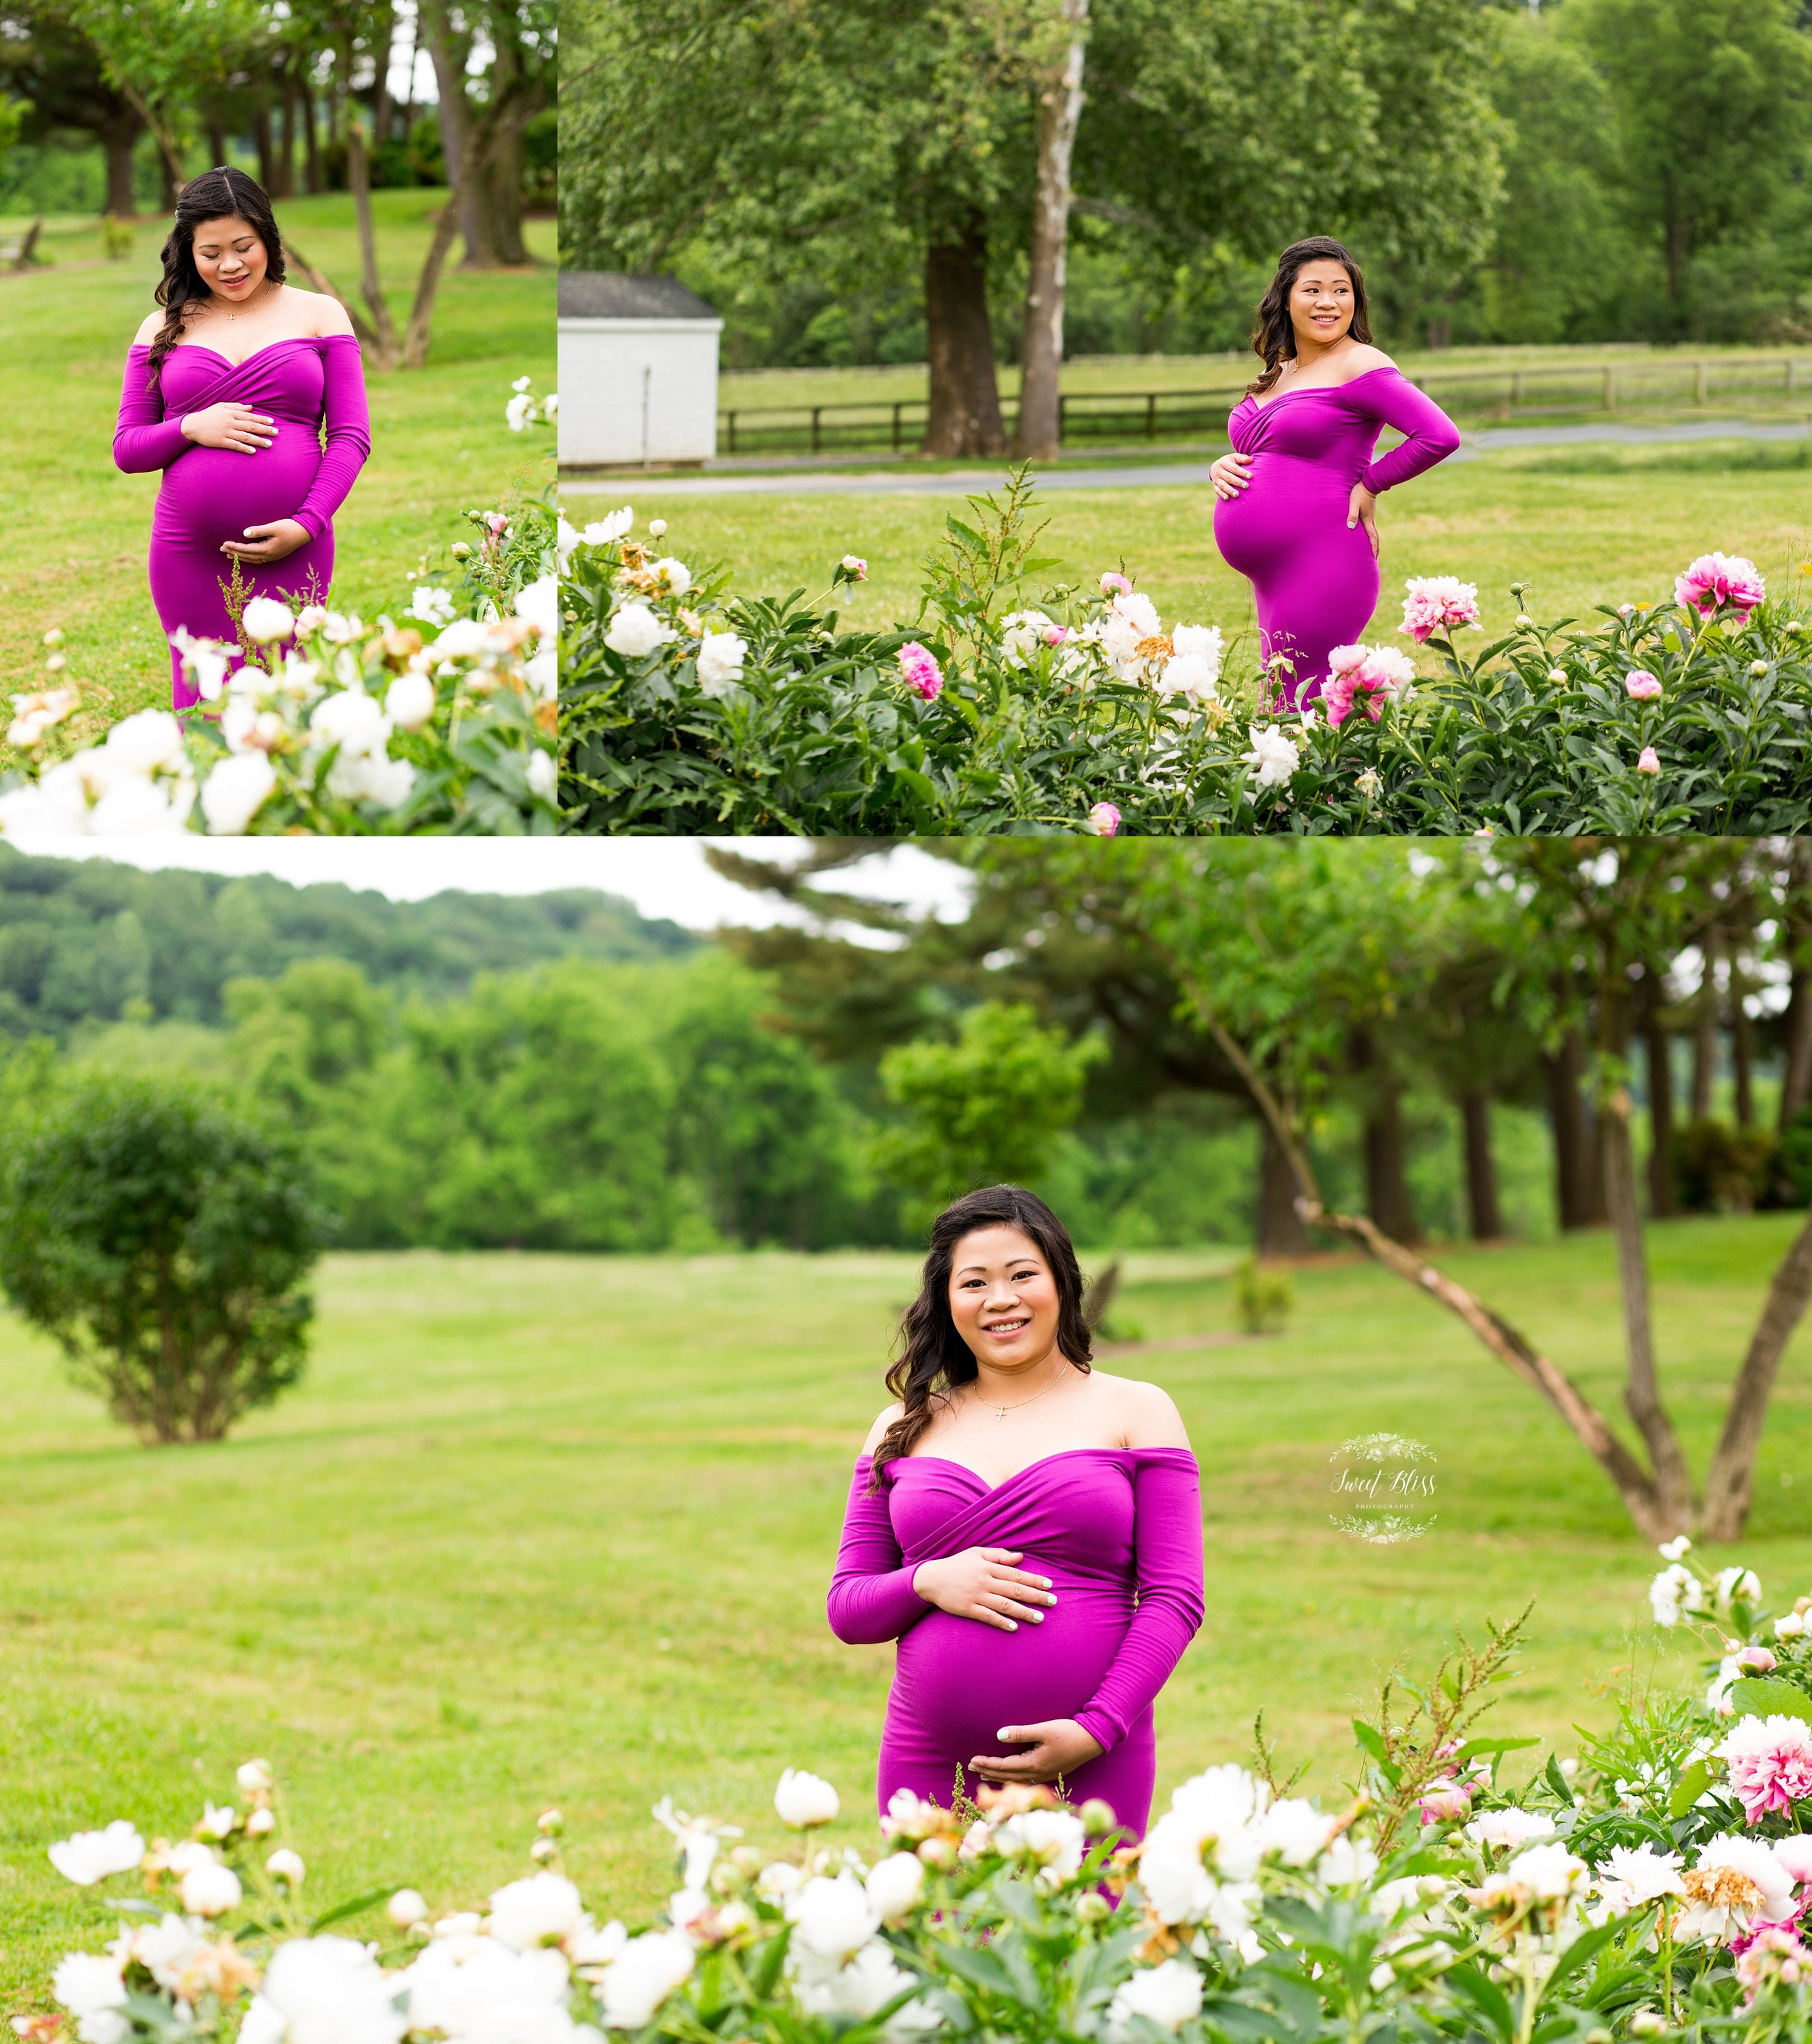 maternitymarylandPhotographer_newbornphoto_sweetblissphotography-3.jpg